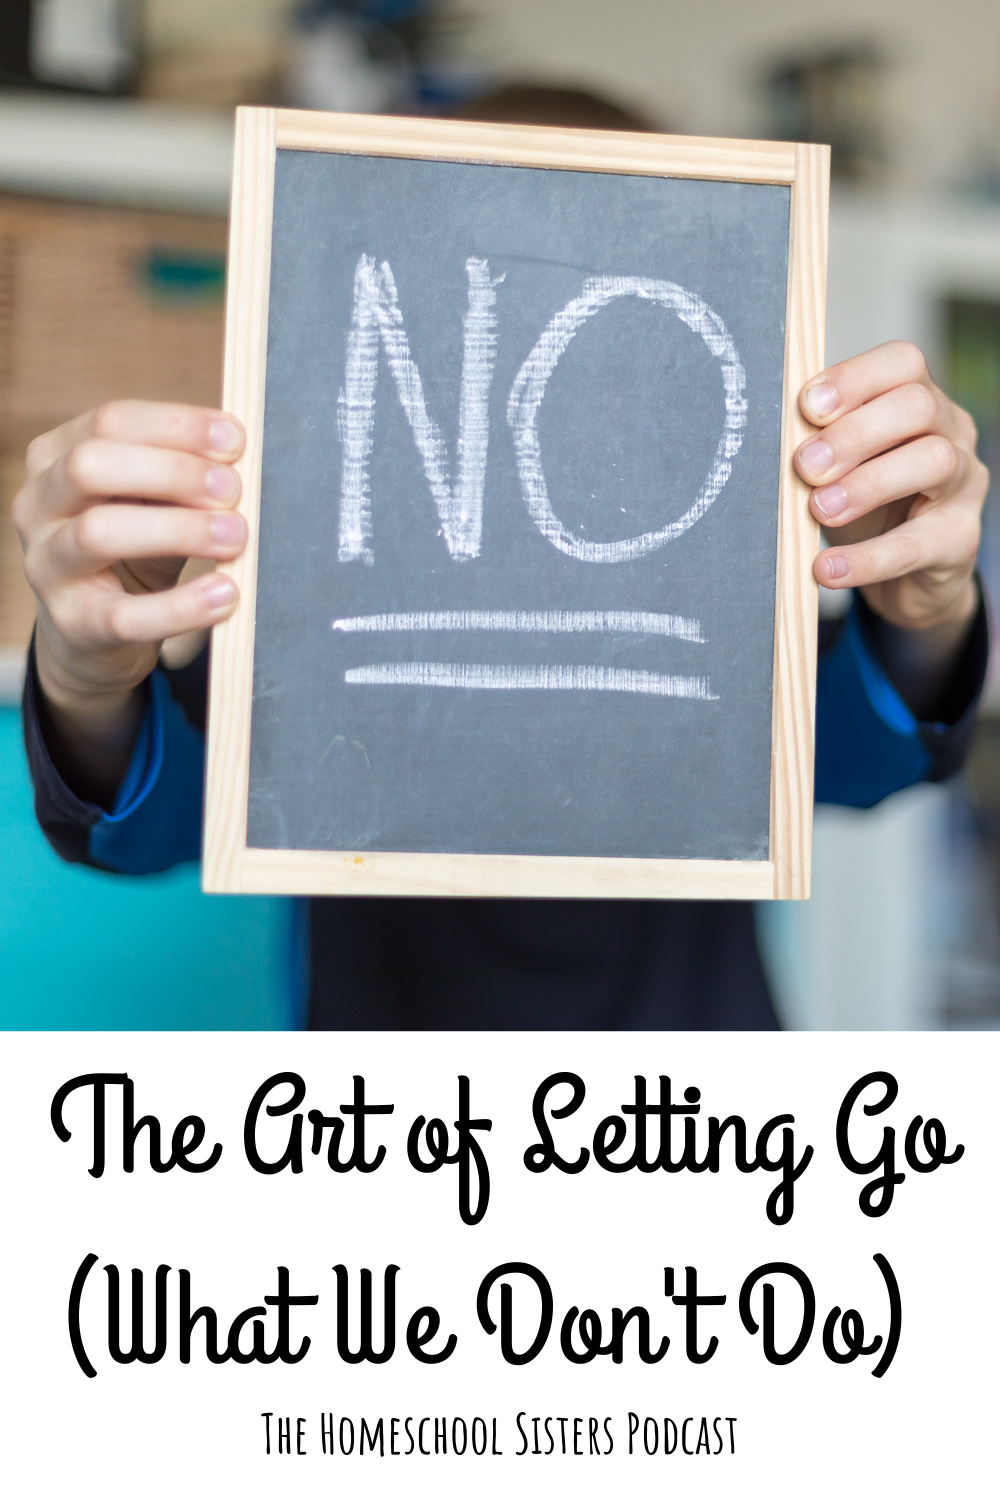 The Art of Letting Go (What We Don't Do)| The Homeschool Sisters Podcast